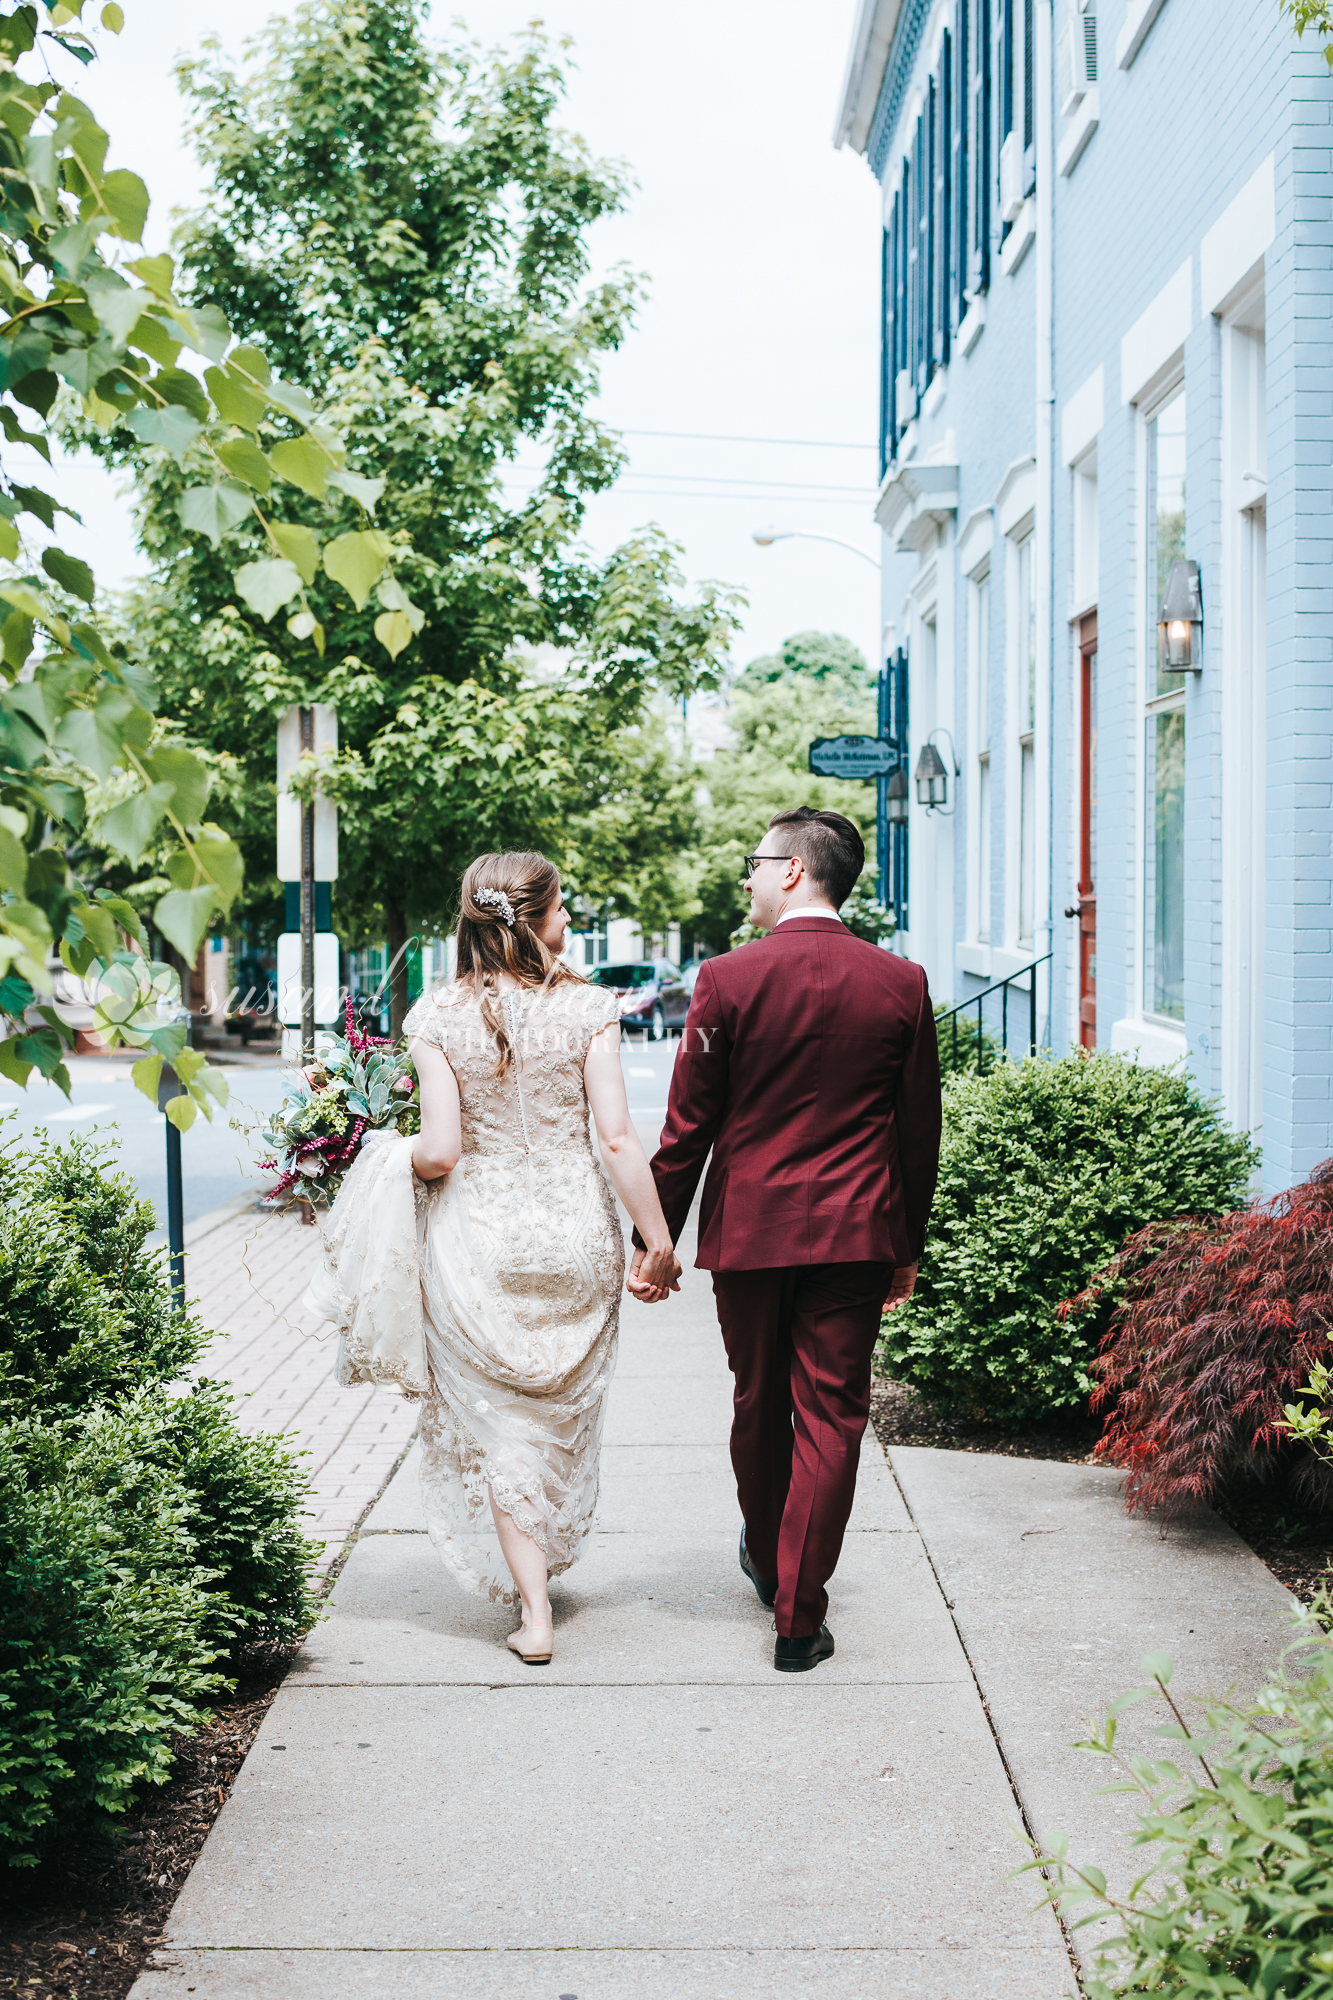 Chynna and John Wedding 05-18-2019 SLY Photography-73.jpg